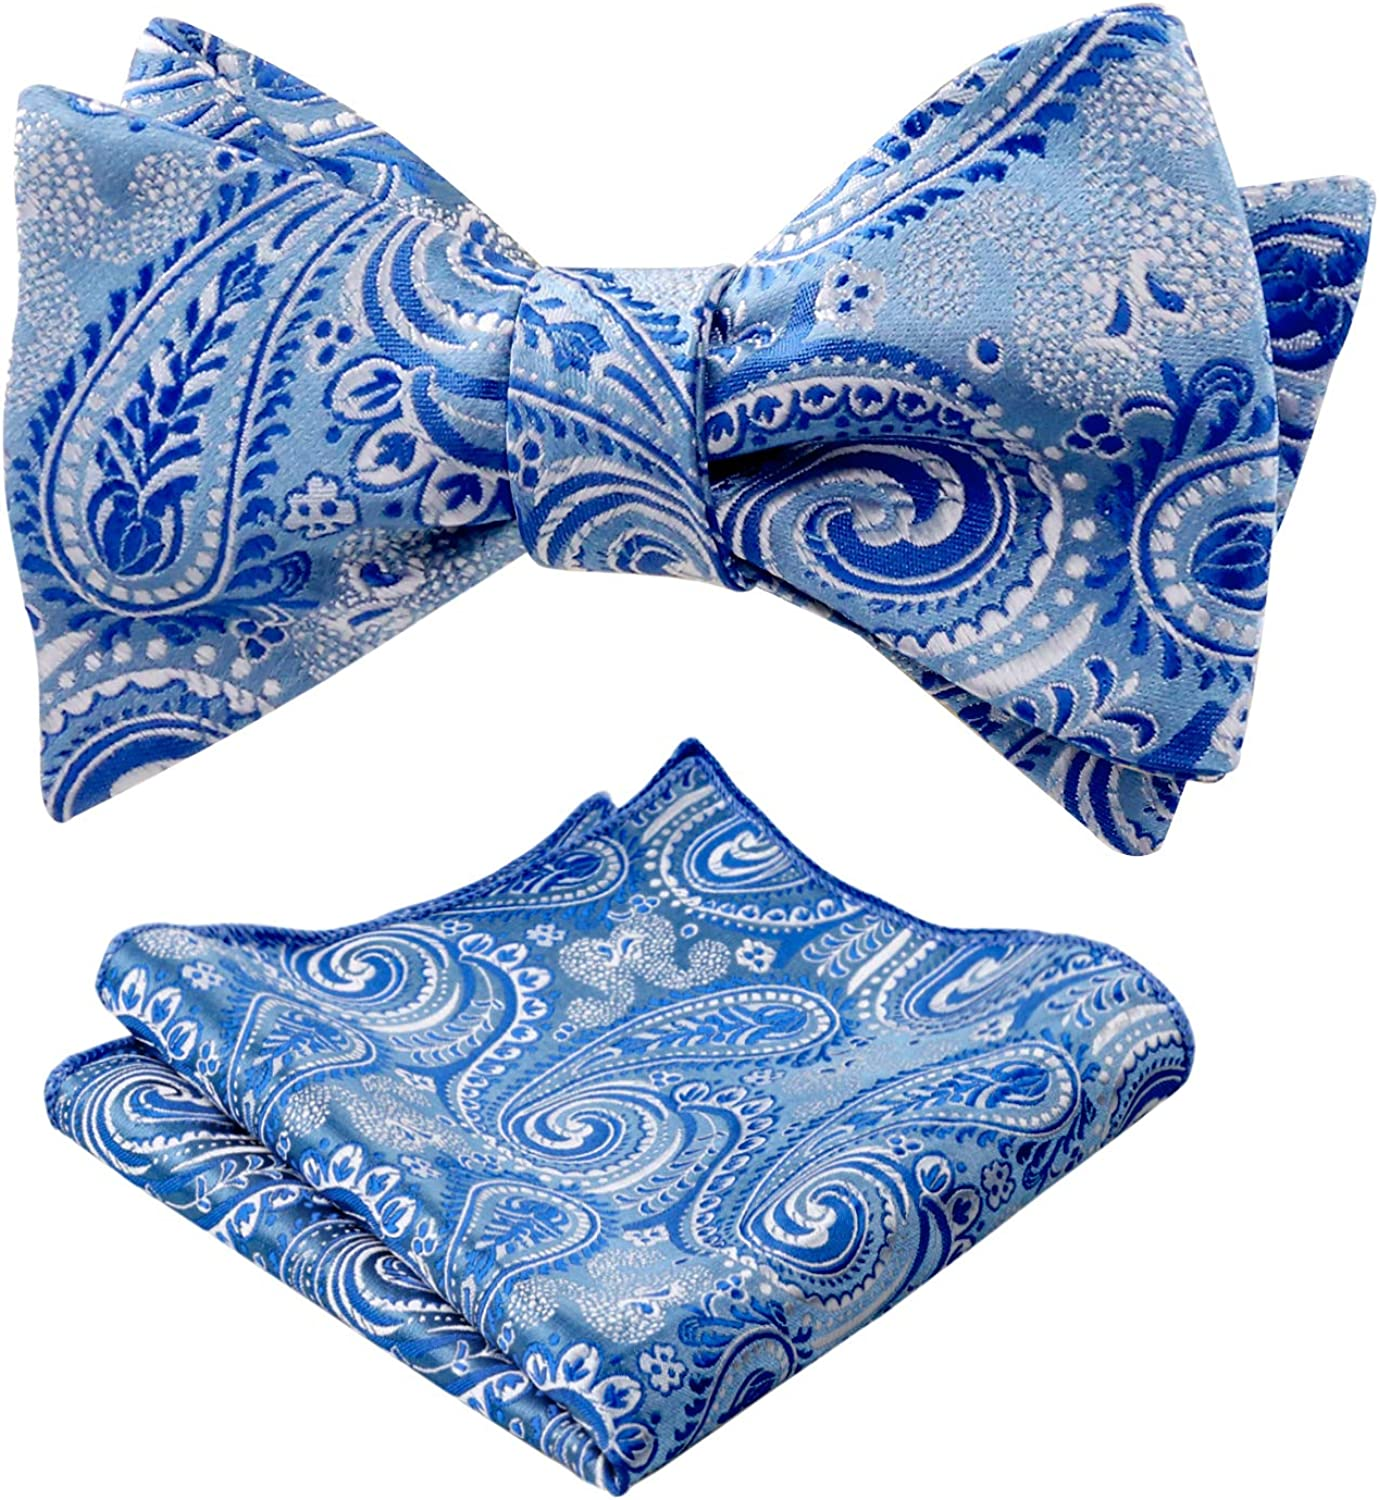 Alizeal Mens Paisley Floral Self-tied Party Prom Bowtie and Hanky Set